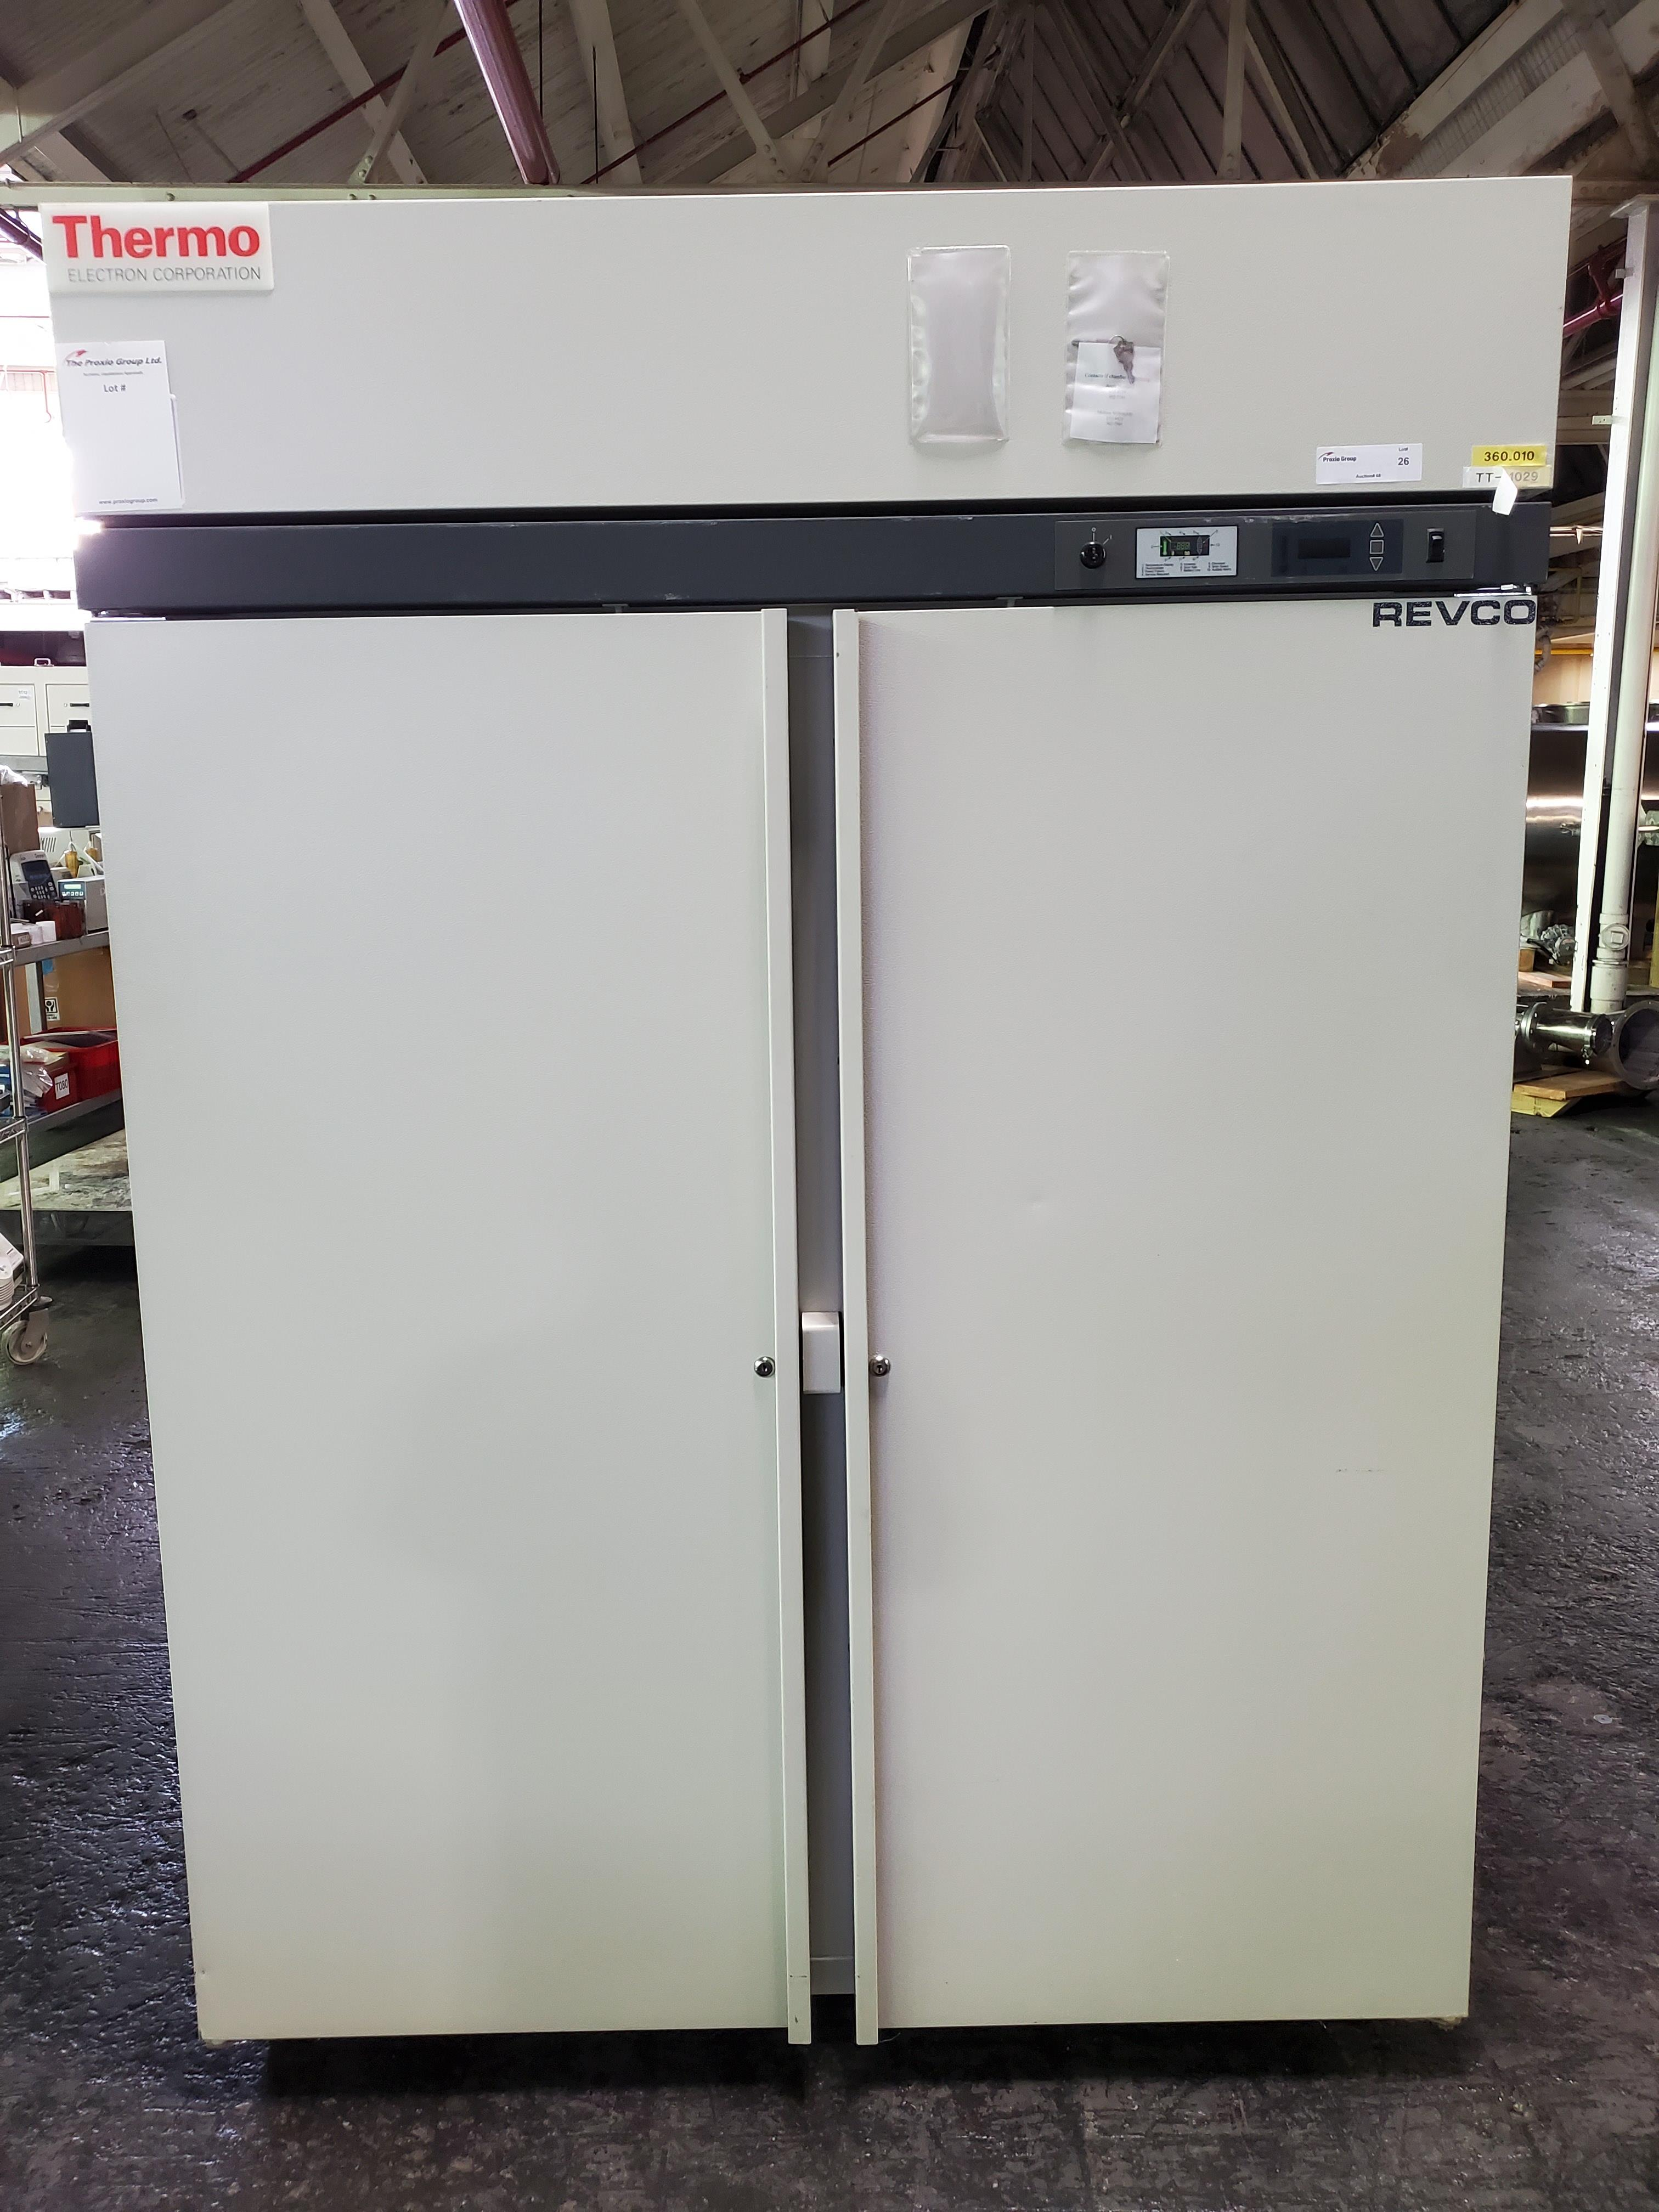 "Revco/Thermo Electron Freezer, model REL5004A21, 53"" wide x 25""deep x 53"" high chamber, R134a"